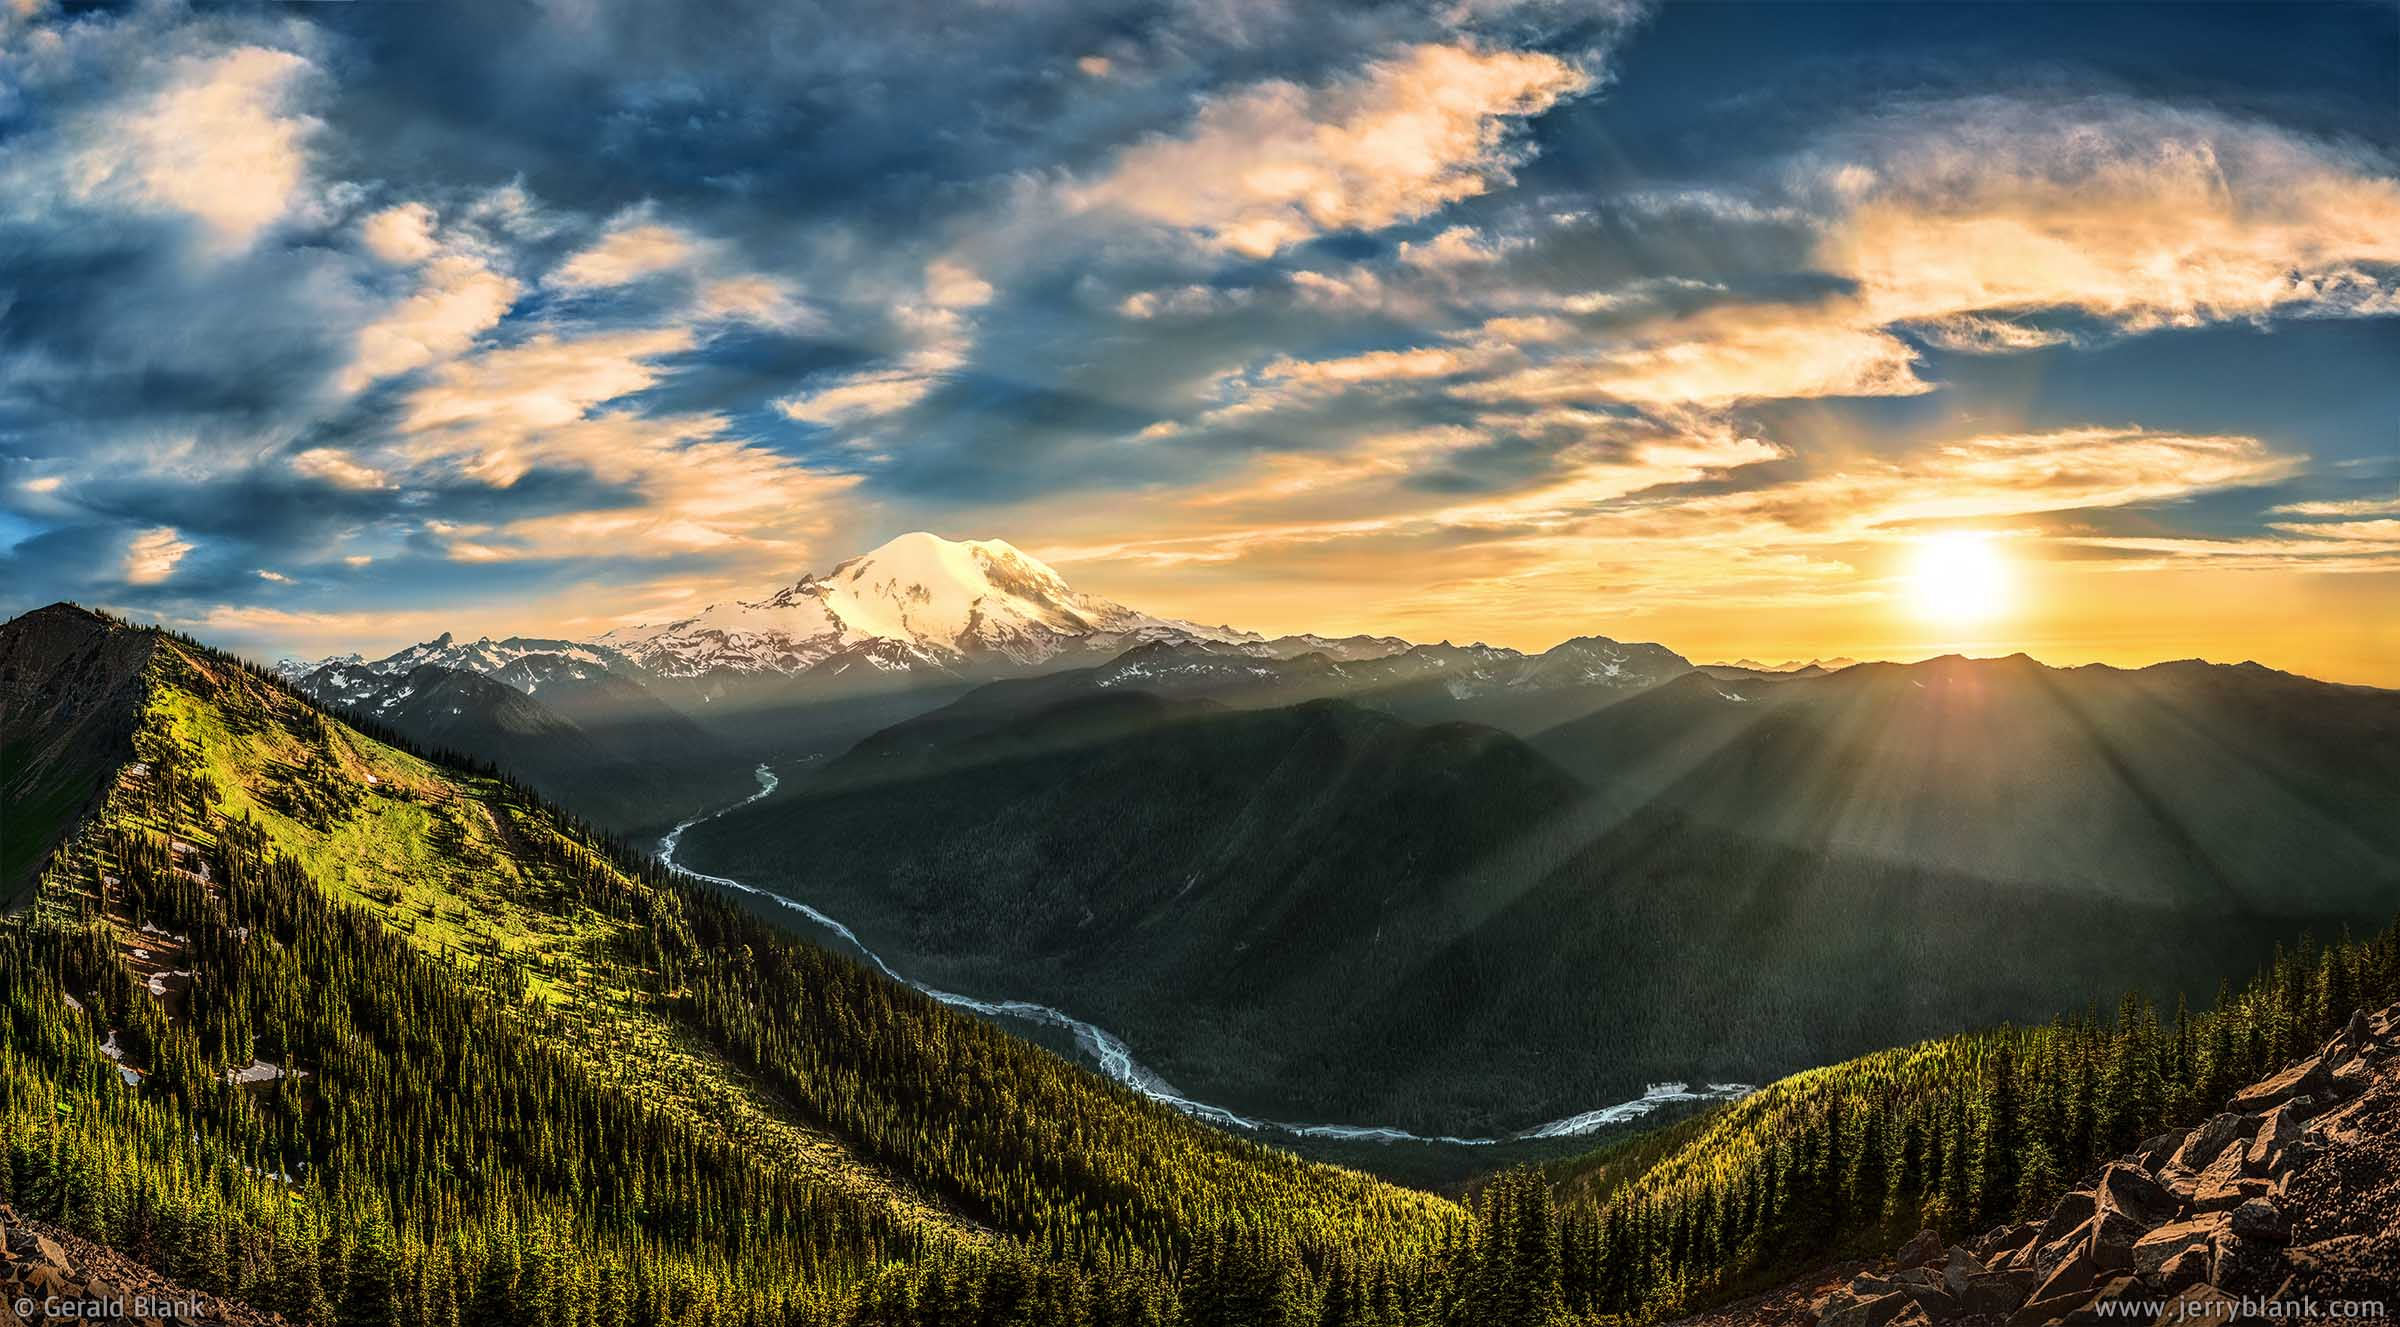 #31322 - Sunset over Mount Rainier and the White River valley in Washington, viewed from a trail near the summit of Crystal Mountain - photo by Jerry Blank